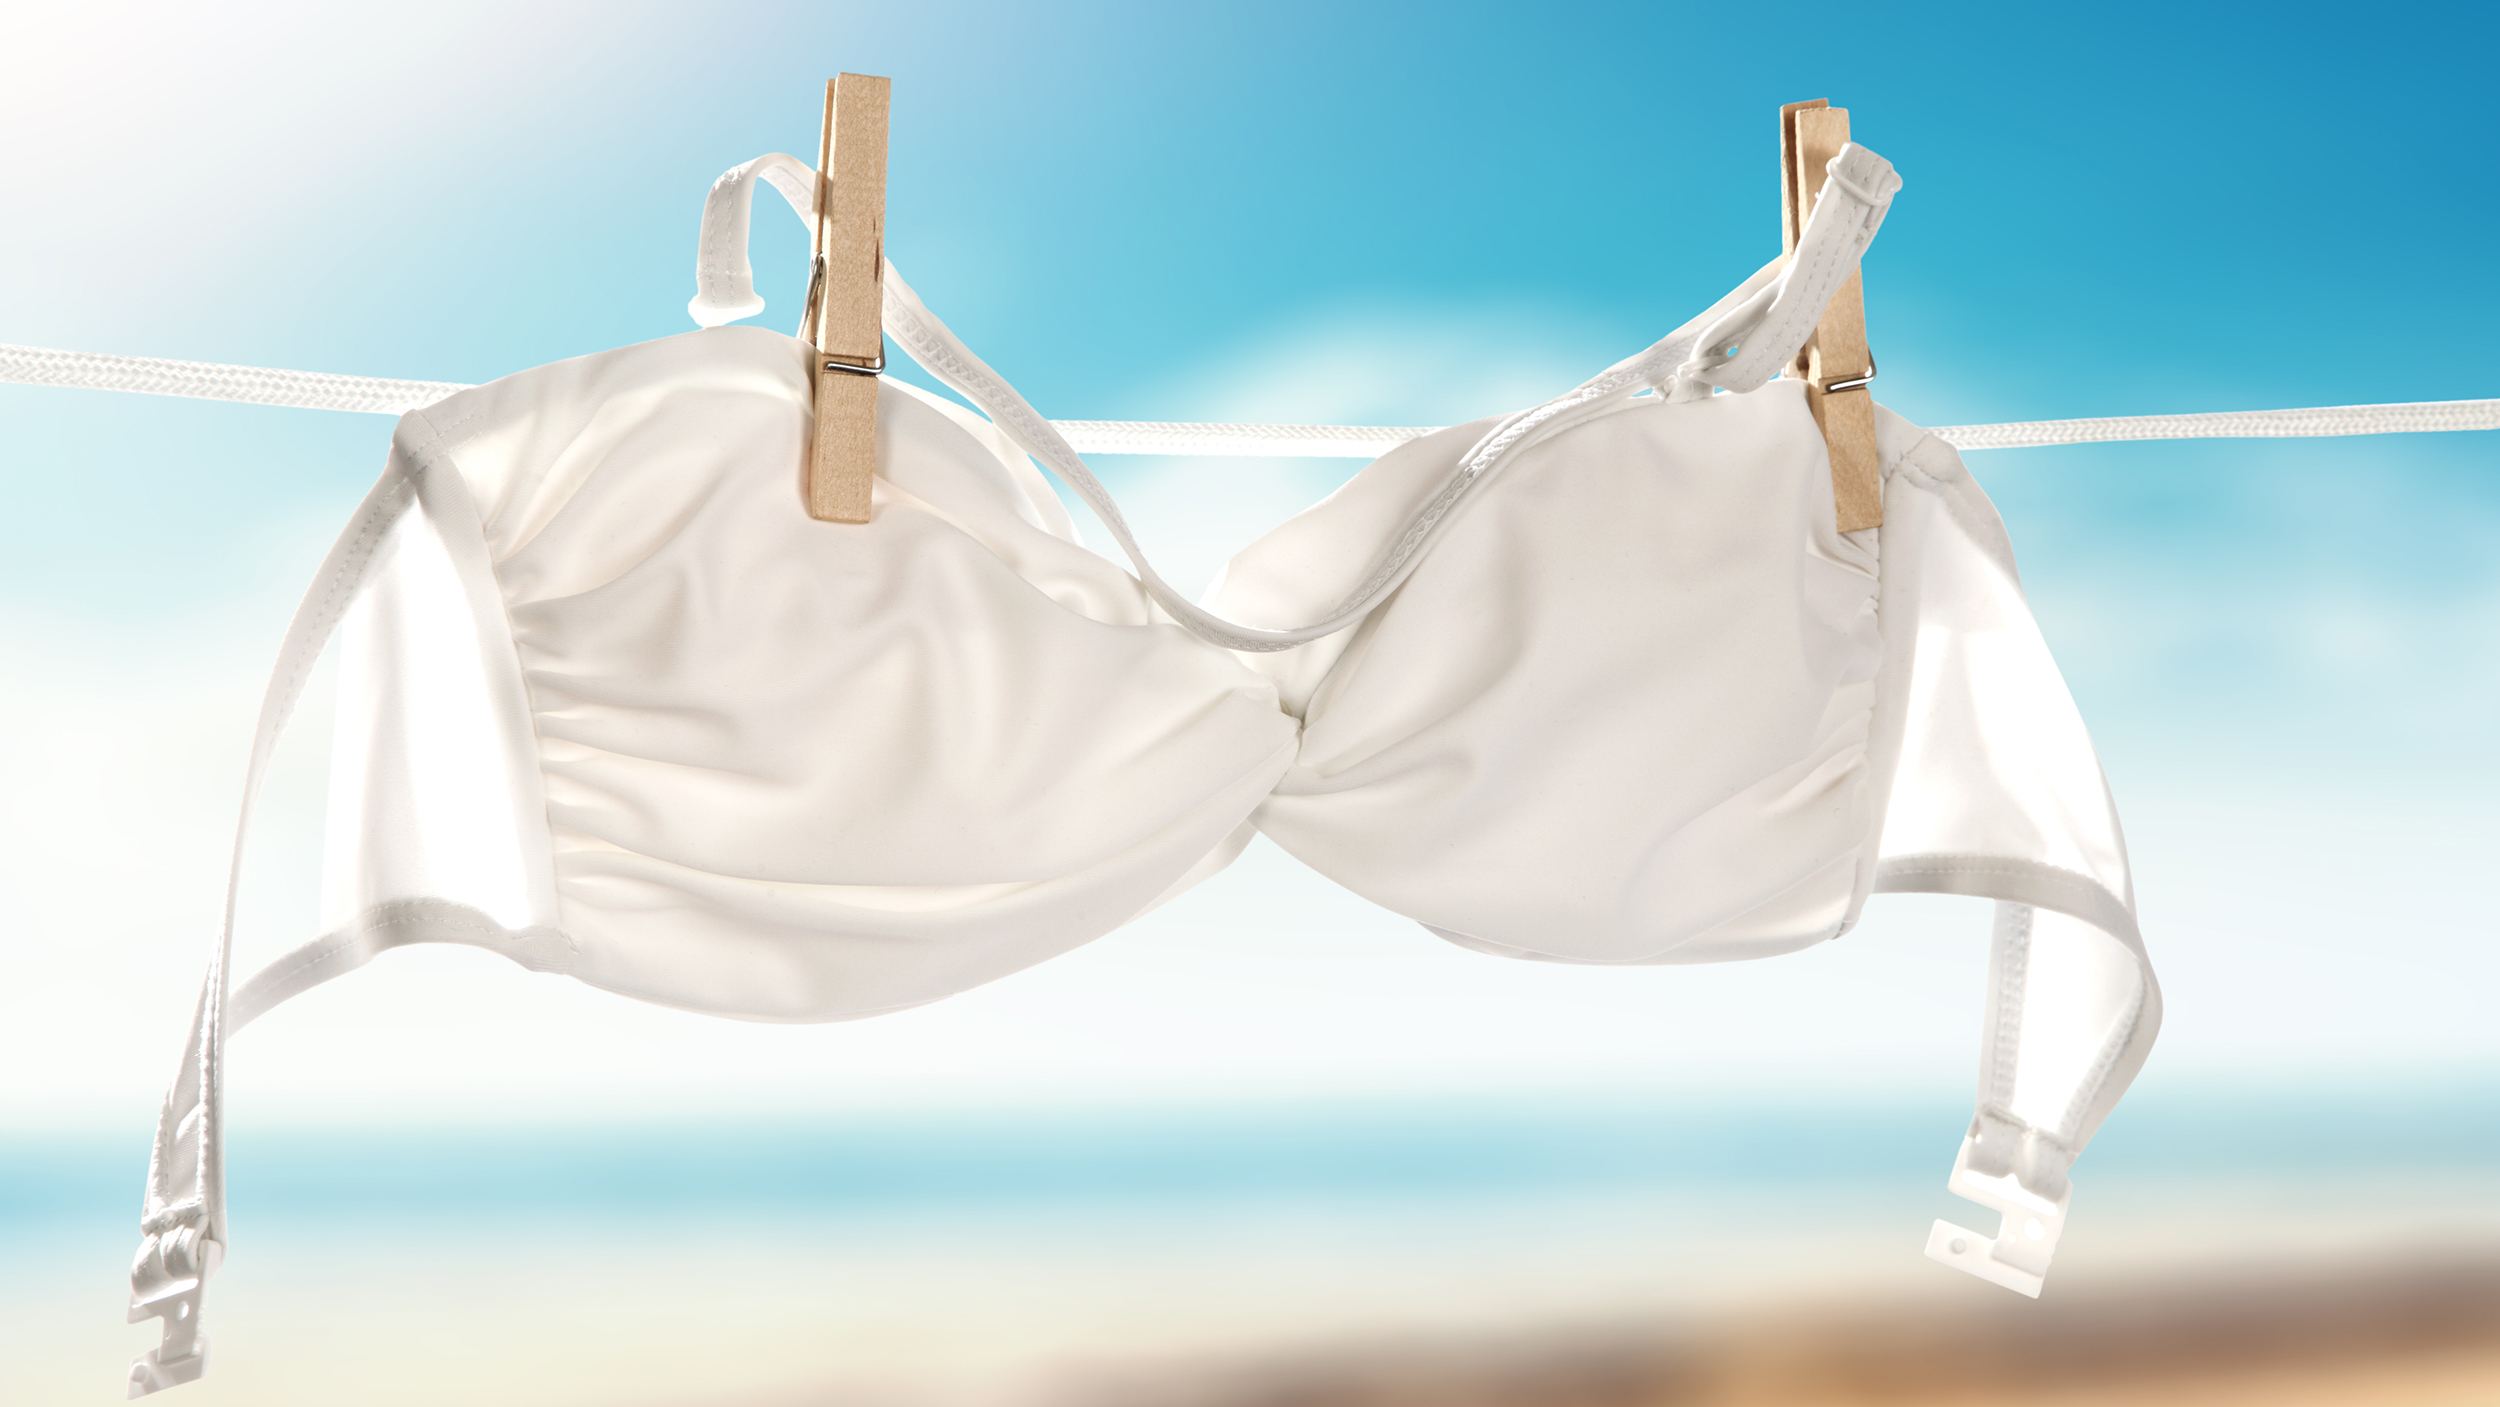 c23c02abe8 How often should you wash your bra  Not as often as you think